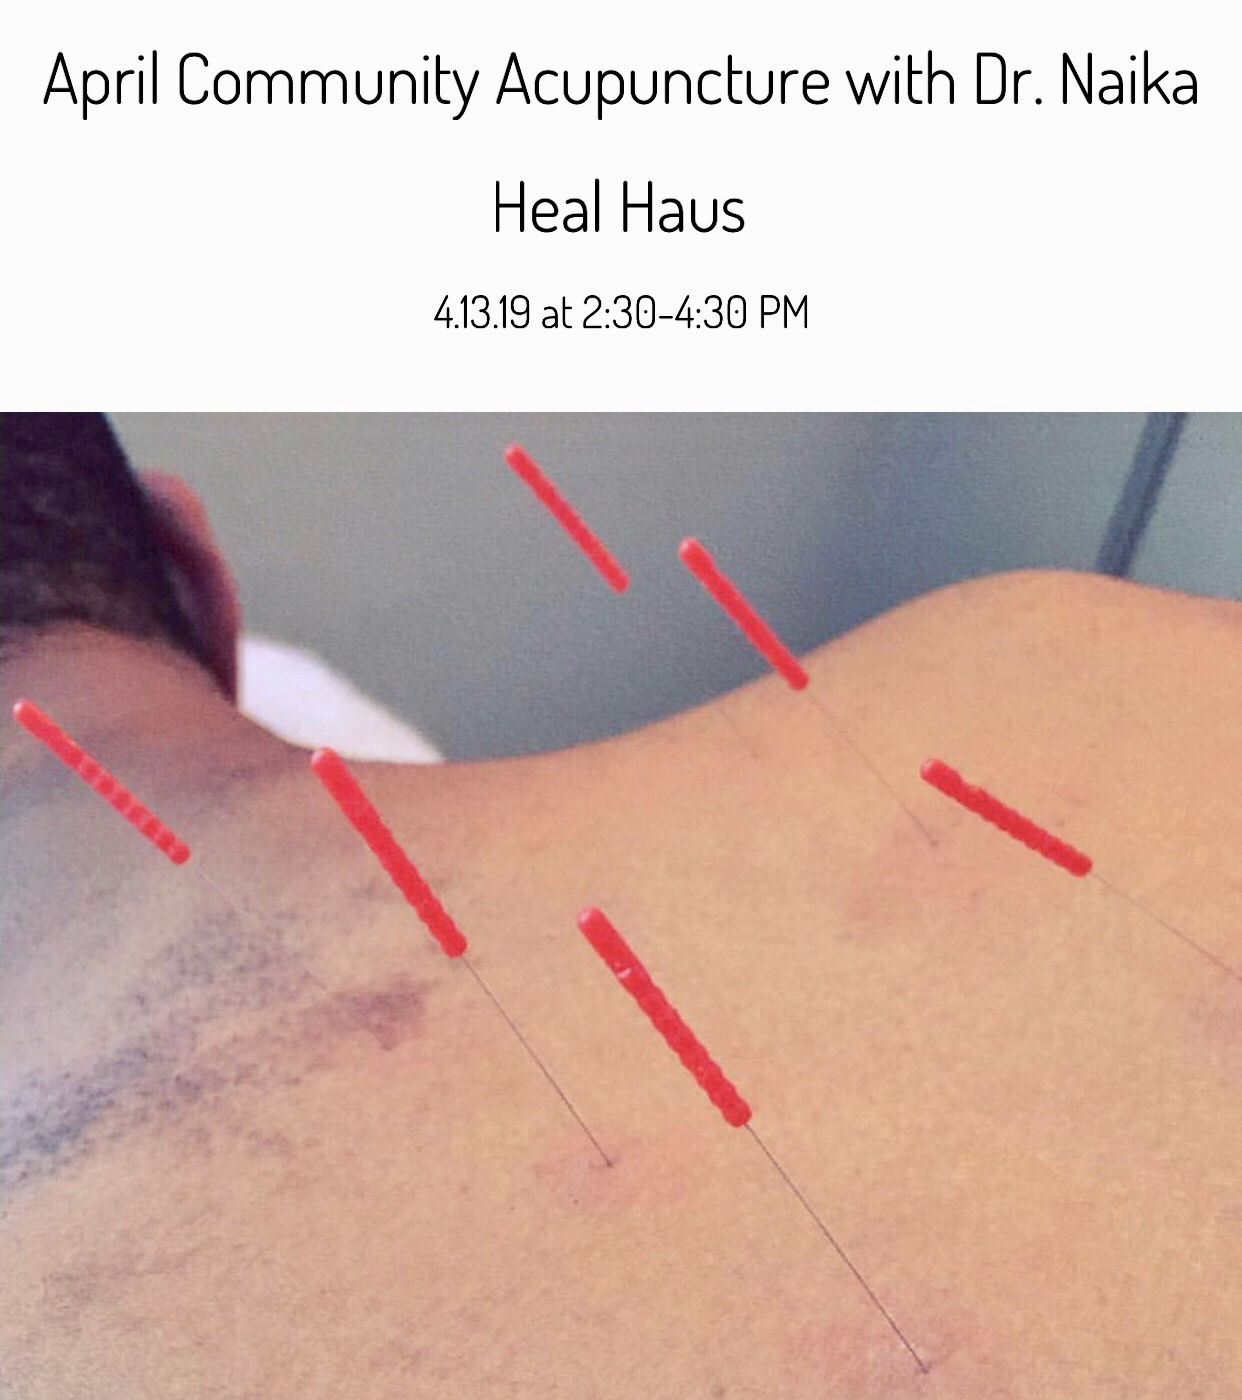 April Community Acupuncture: 4.13 at Heal Haus